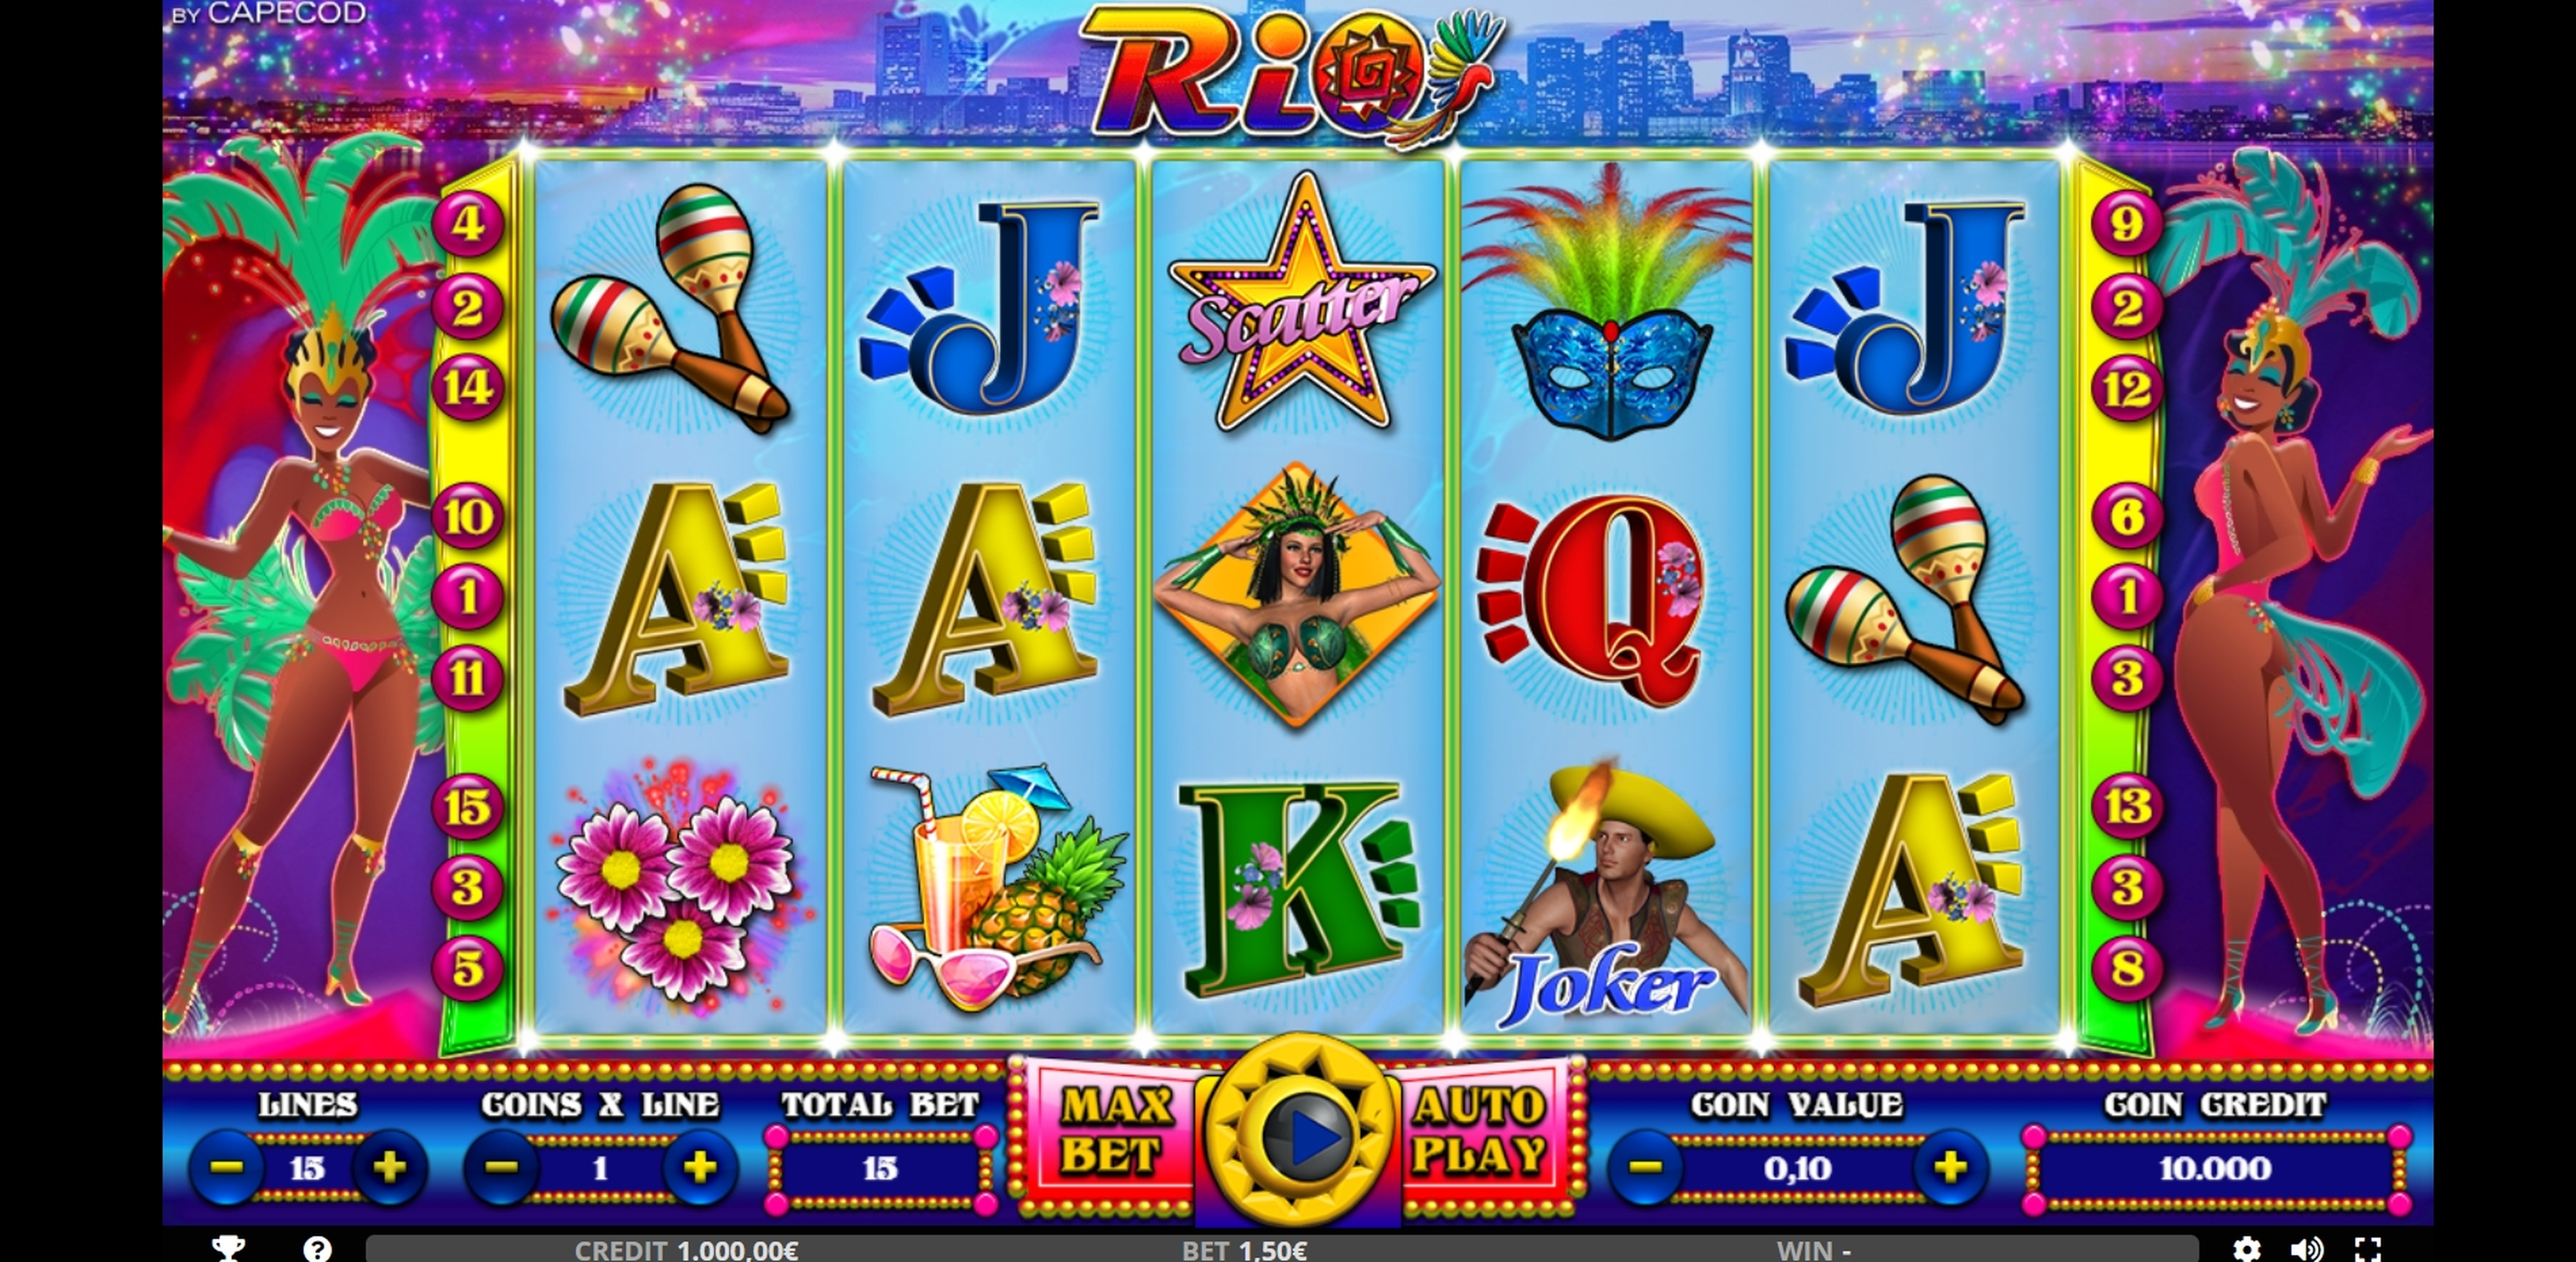 Reels in Rio Slot Game by Capecod Gaming